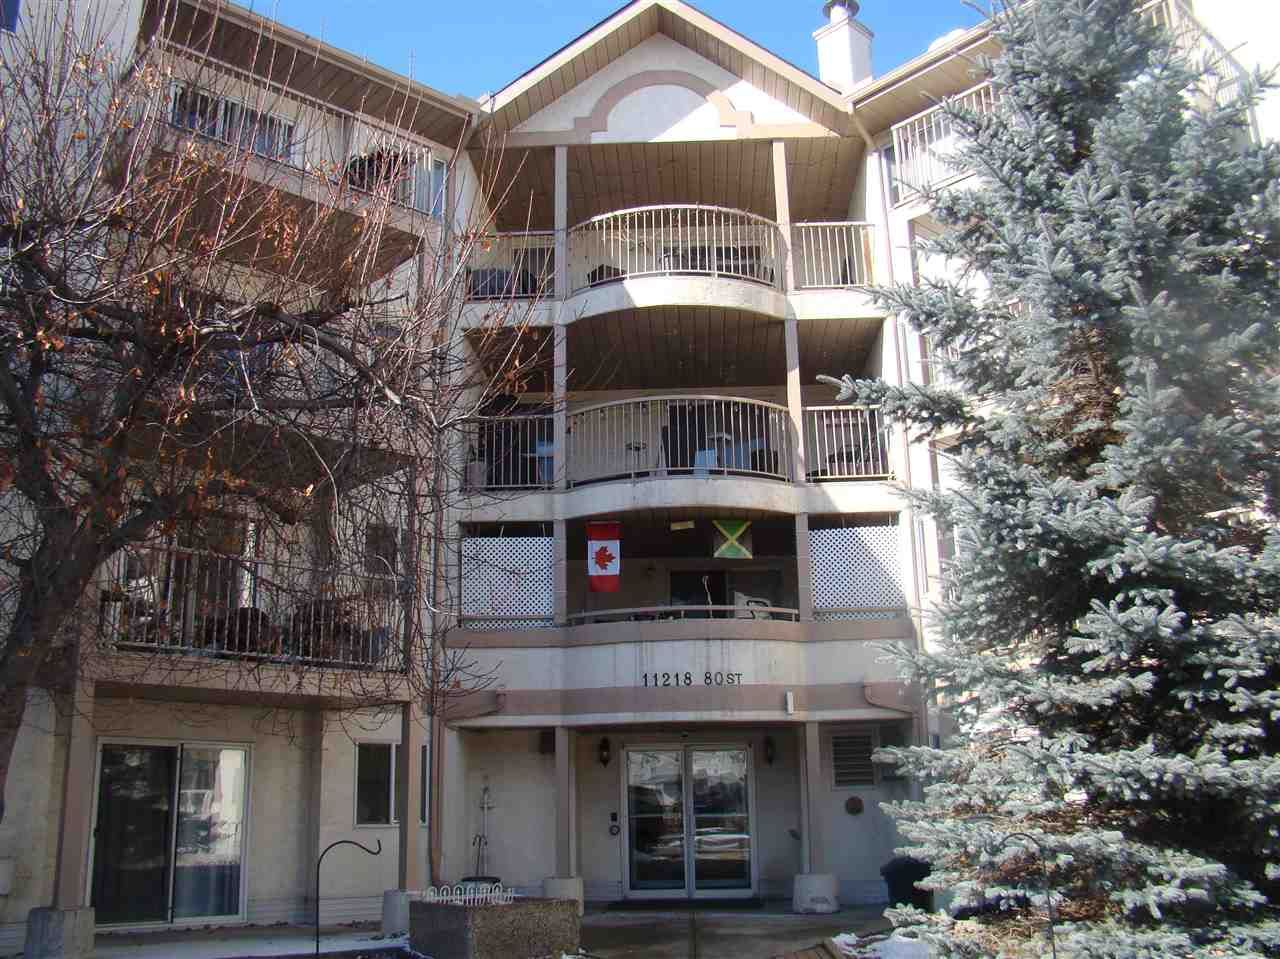 Main Photo: 209 11218 80 Street in Edmonton: Zone 09 Condo for sale : MLS®# E4241143